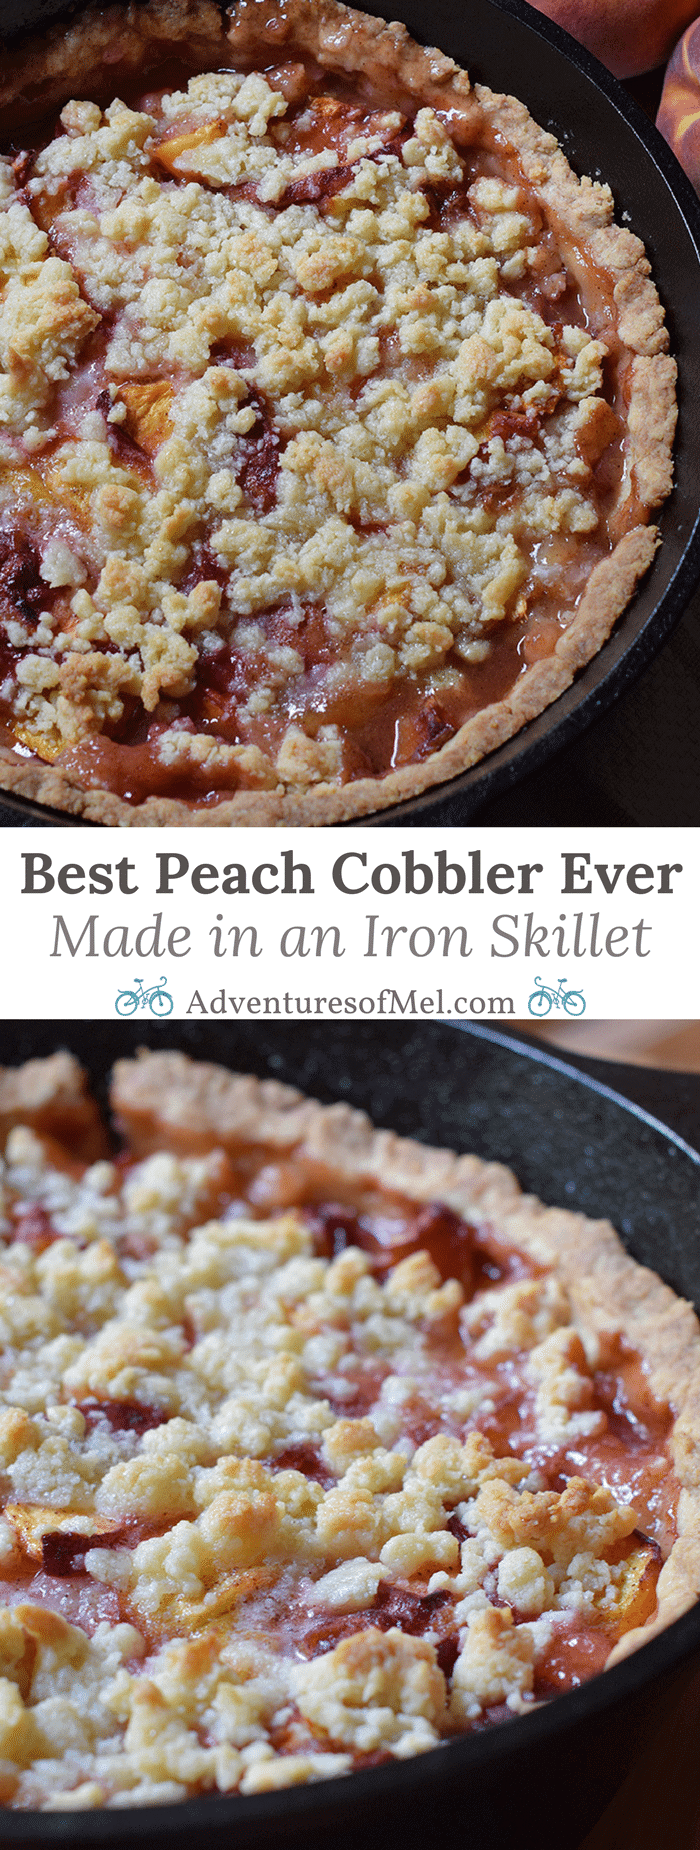 Peach cobbler is probably the easiest dessert recipe you could ever make, besides chocolate chip cookies. Ingredients are simple, and the crust is a press-in crust, my favorite type of pie crust! Grab the recipe, bake it up in your favorite cast iron skillet (or baking dish), serve with vanilla ice cream, and watch it disappear.